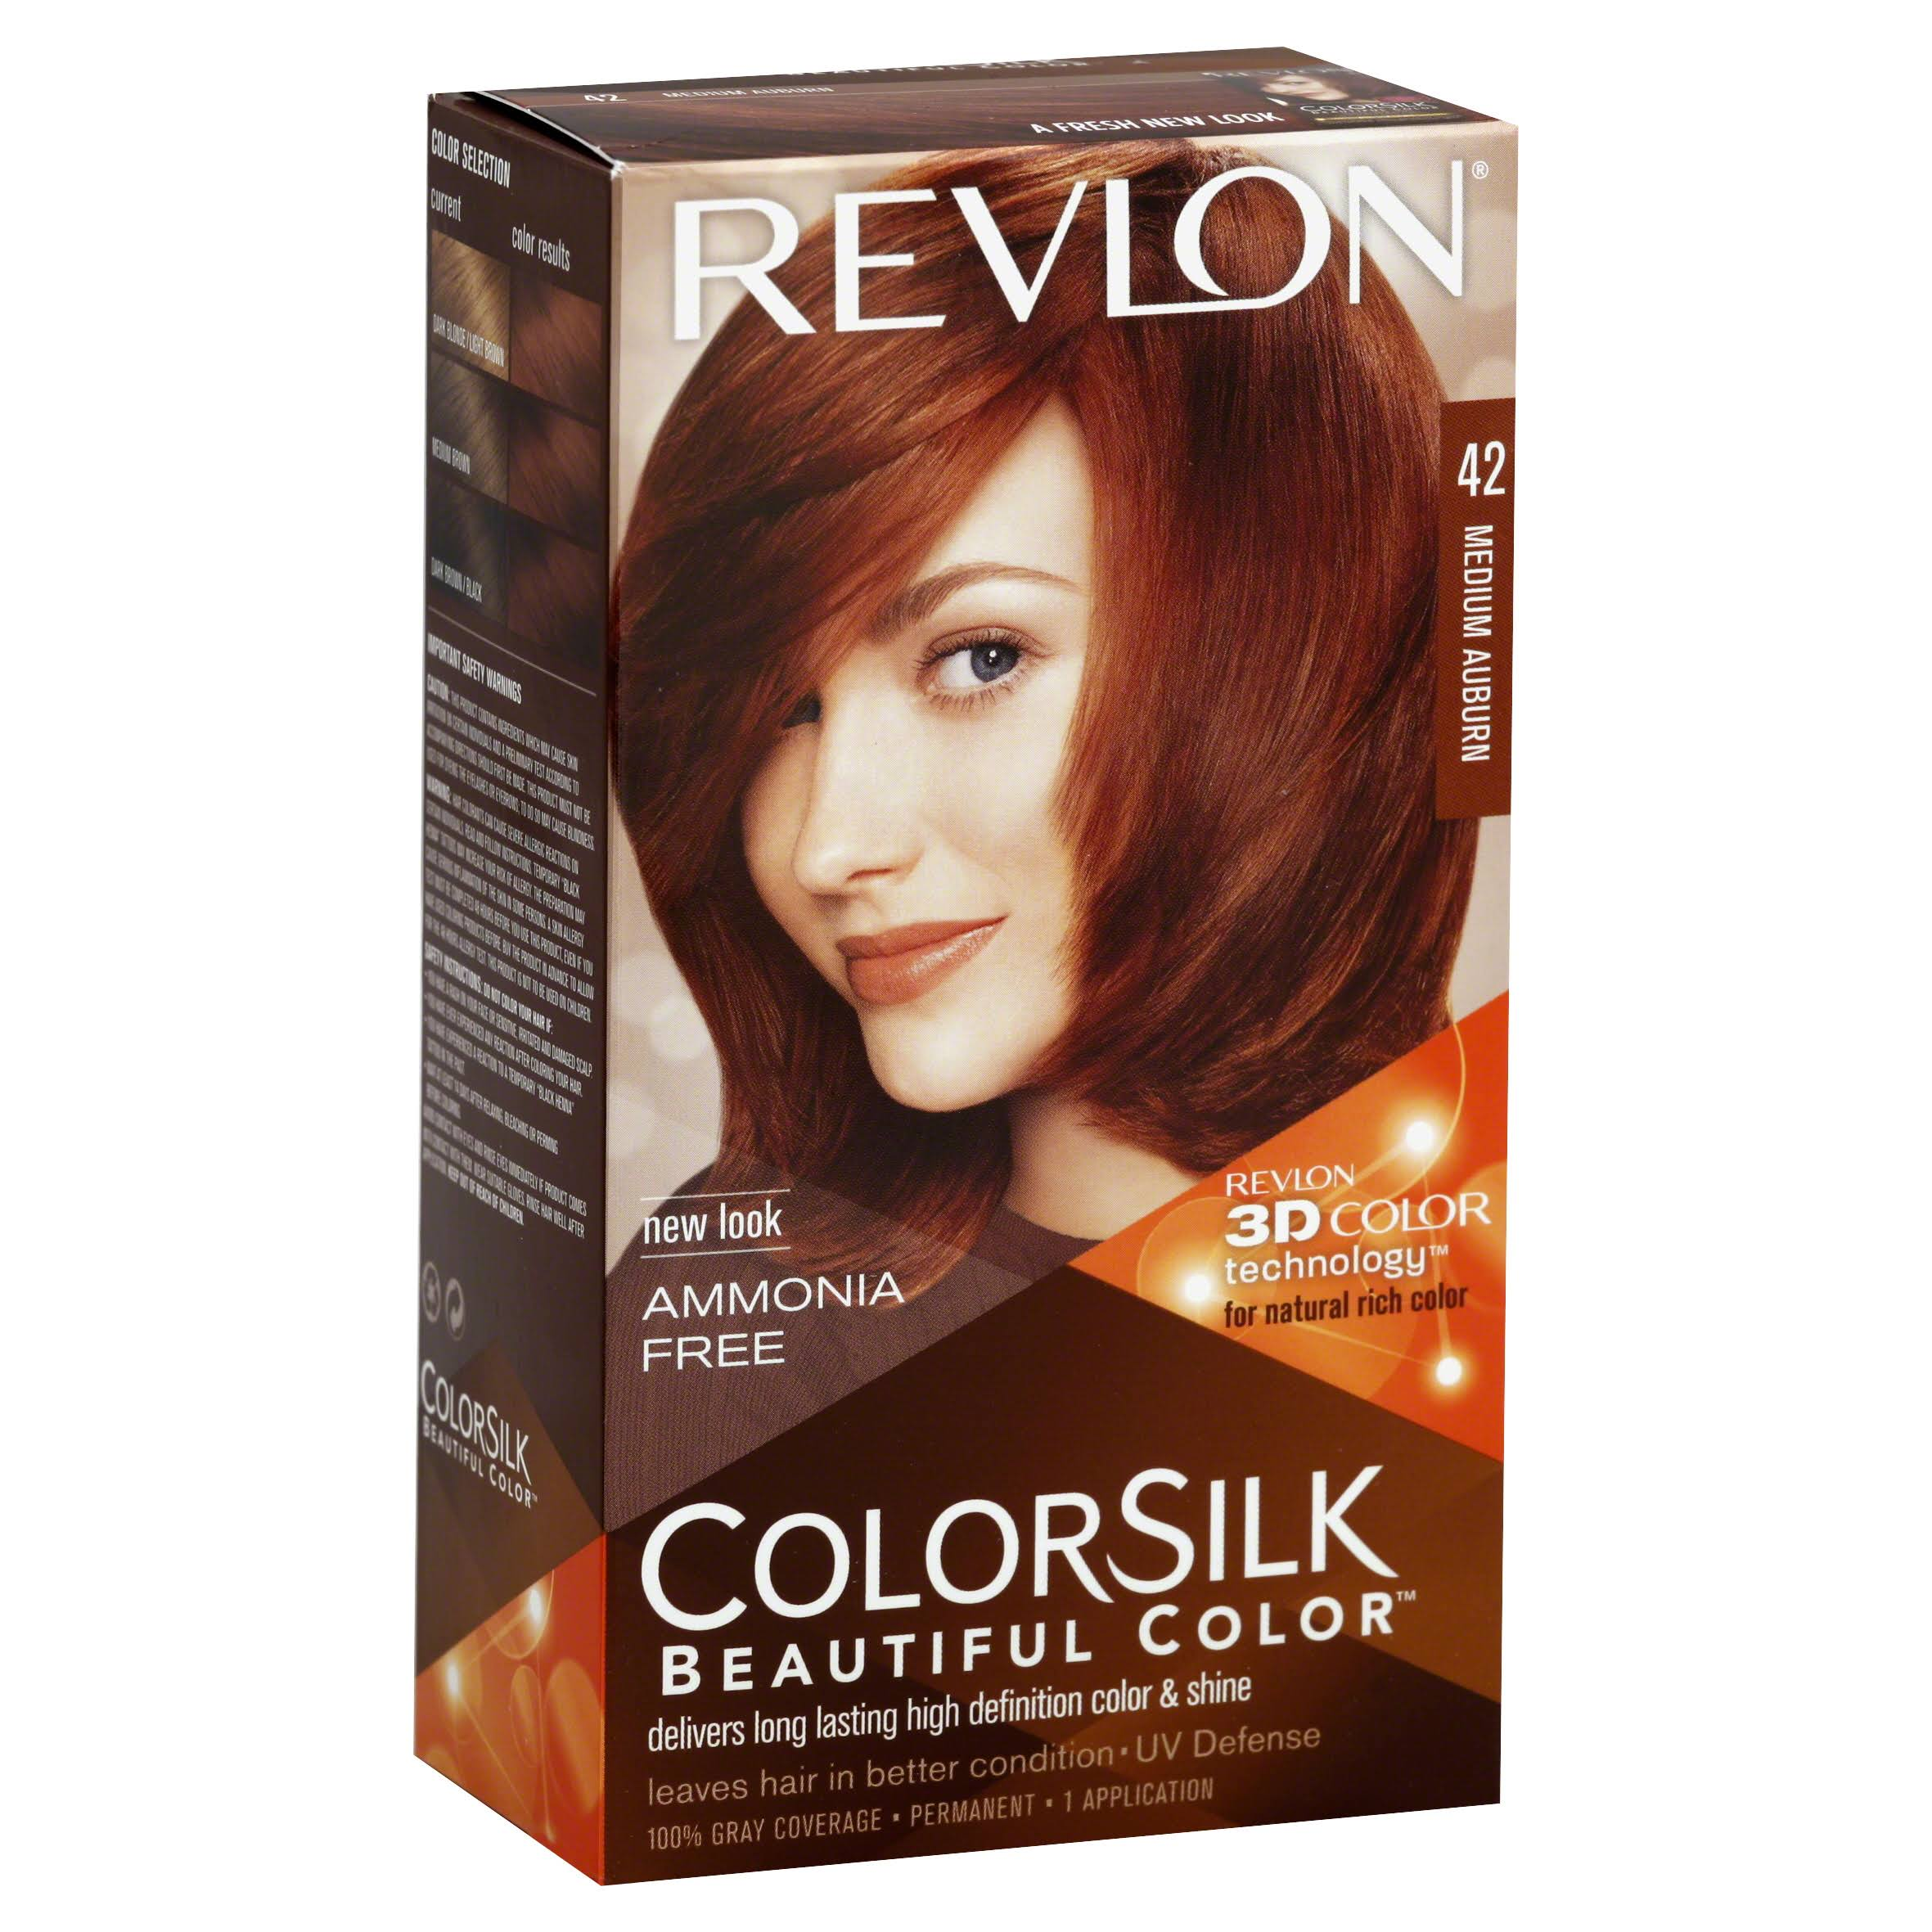 Revlon ColorSilk Beautiful Permanent Hair Color - Medium Auburn